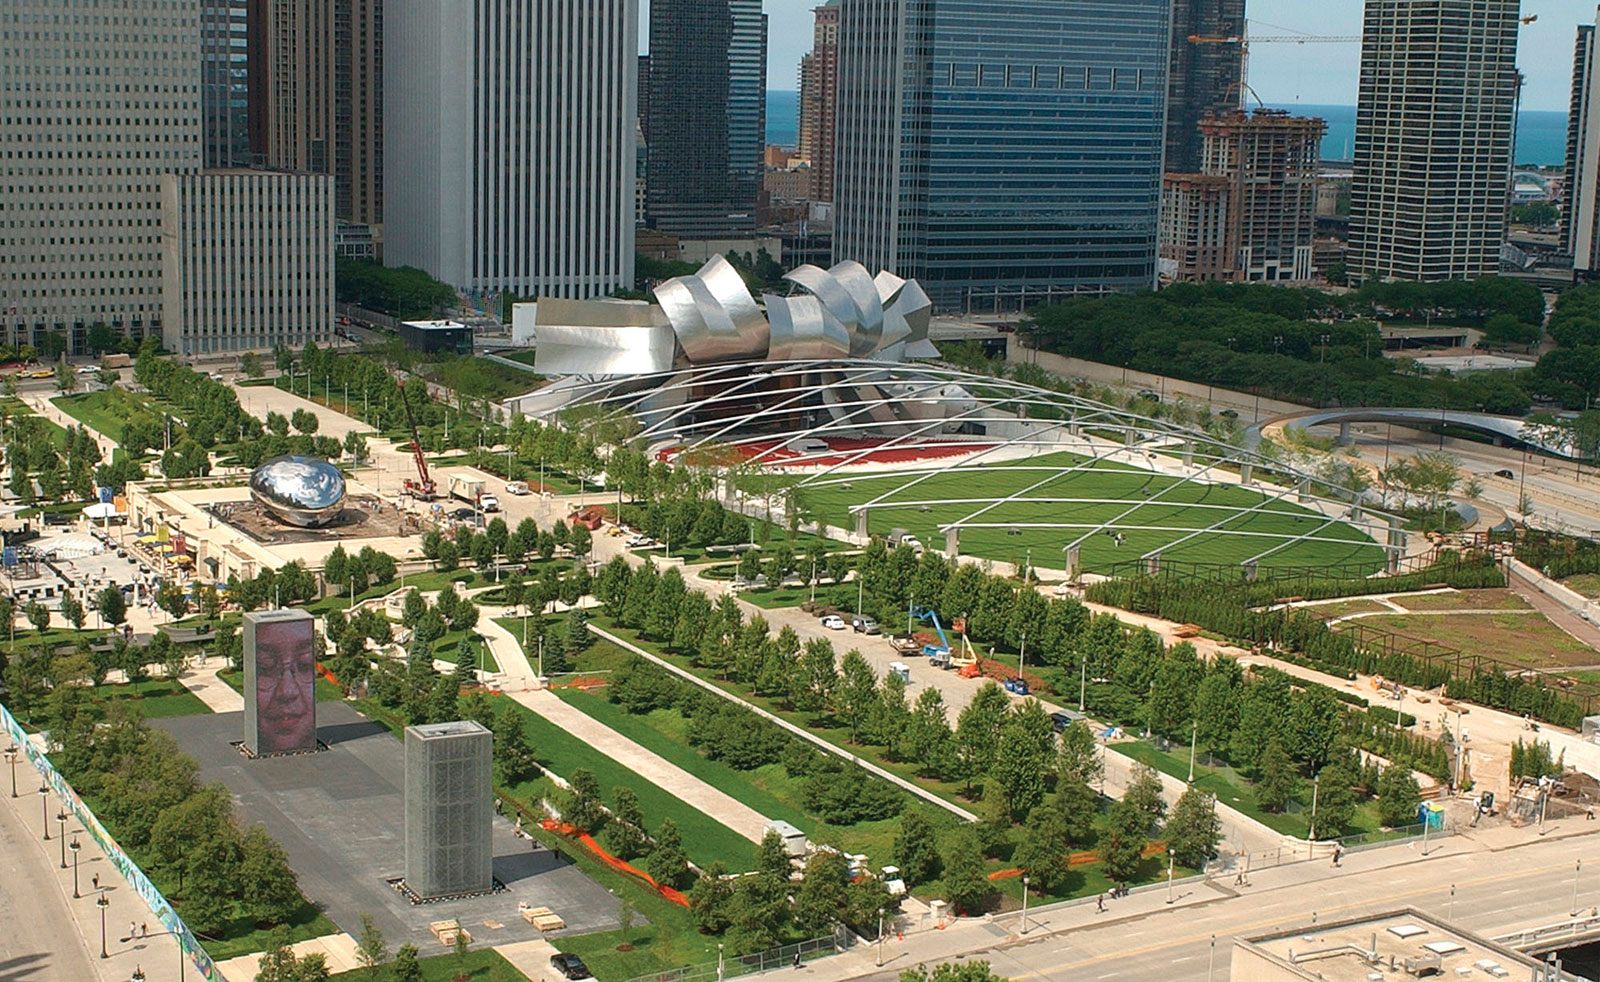 2012 06 07 ngp chicago Plan  mission Presentation Indd 2 likewise Chi Worldclass Park To Honor Maggie Daley A Wo 003 Photo additionally Watch as well Winter In Chicago Top 10 Winter Activities Chicago furthermore Millennium park. on maggie daley park